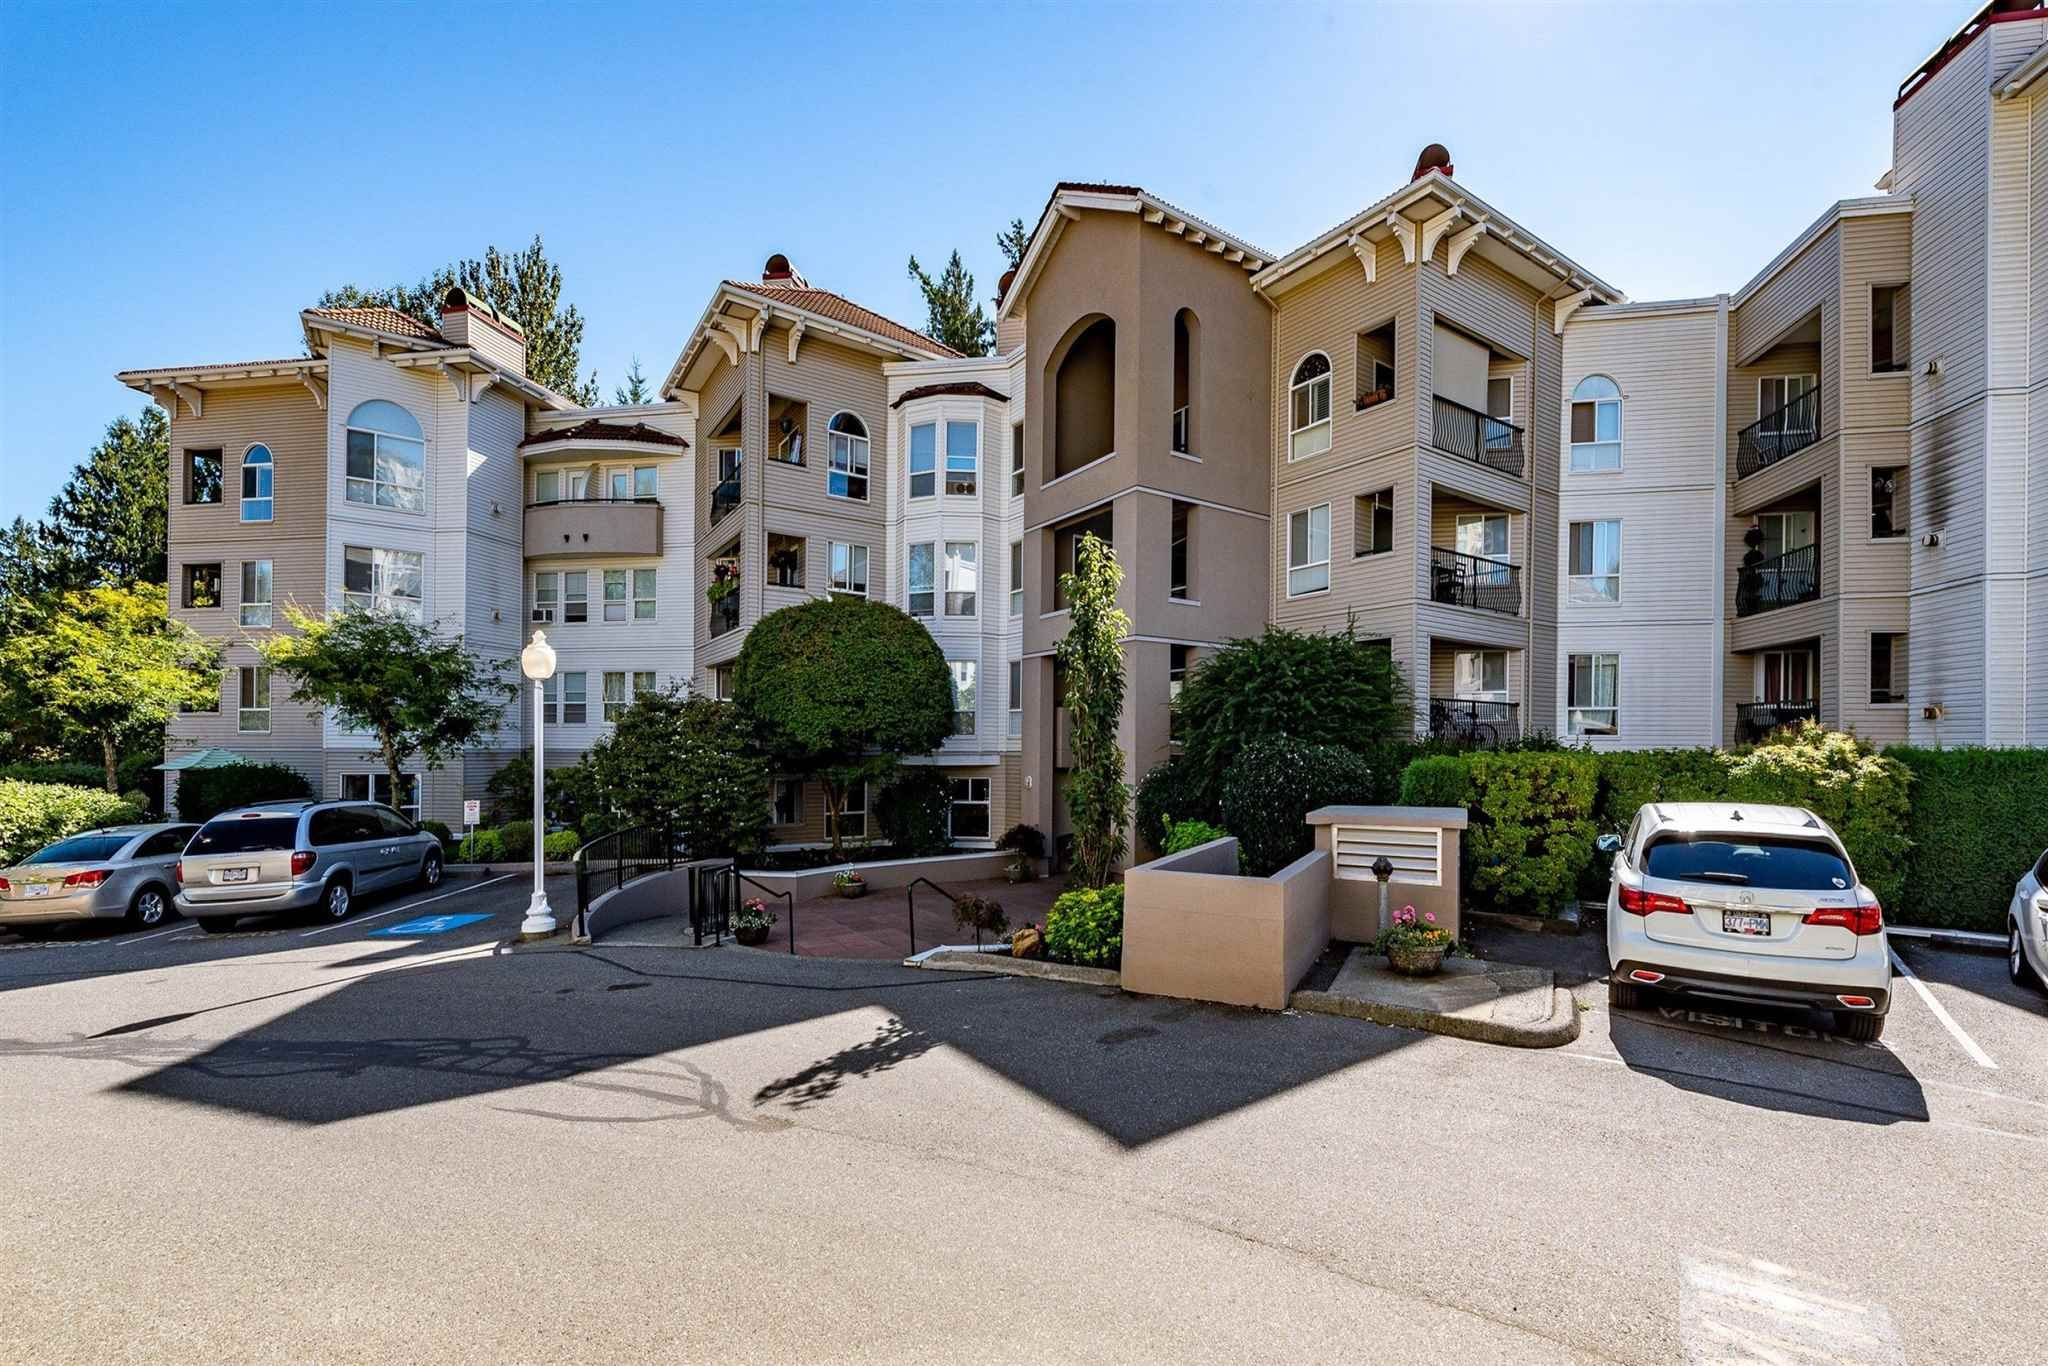 """Main Photo: 412 3176 GLADWIN Road in Abbotsford: Central Abbotsford Condo for sale in """"Regency Park"""" : MLS®# R2603924"""